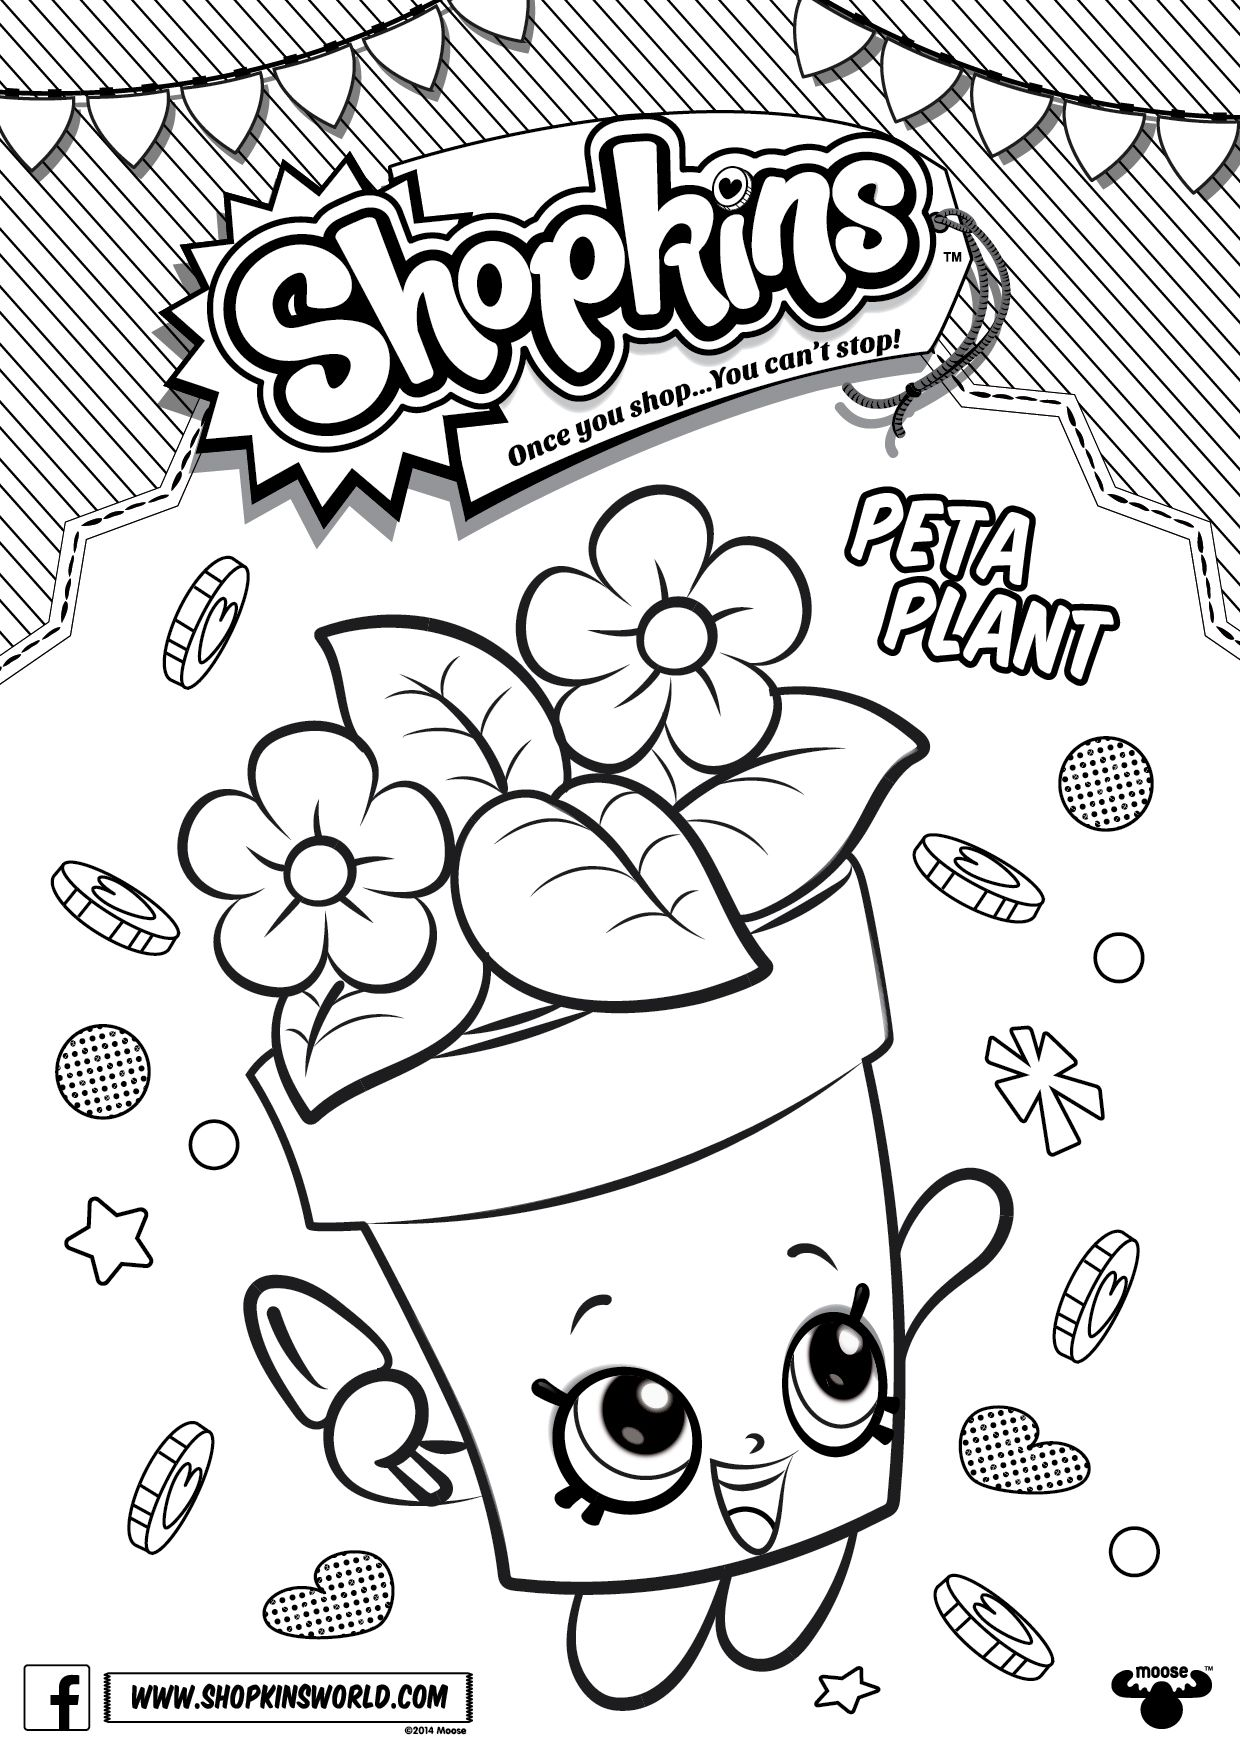 Shopkins Printable | spk | Pinterest | Colorear, Páginas para ...